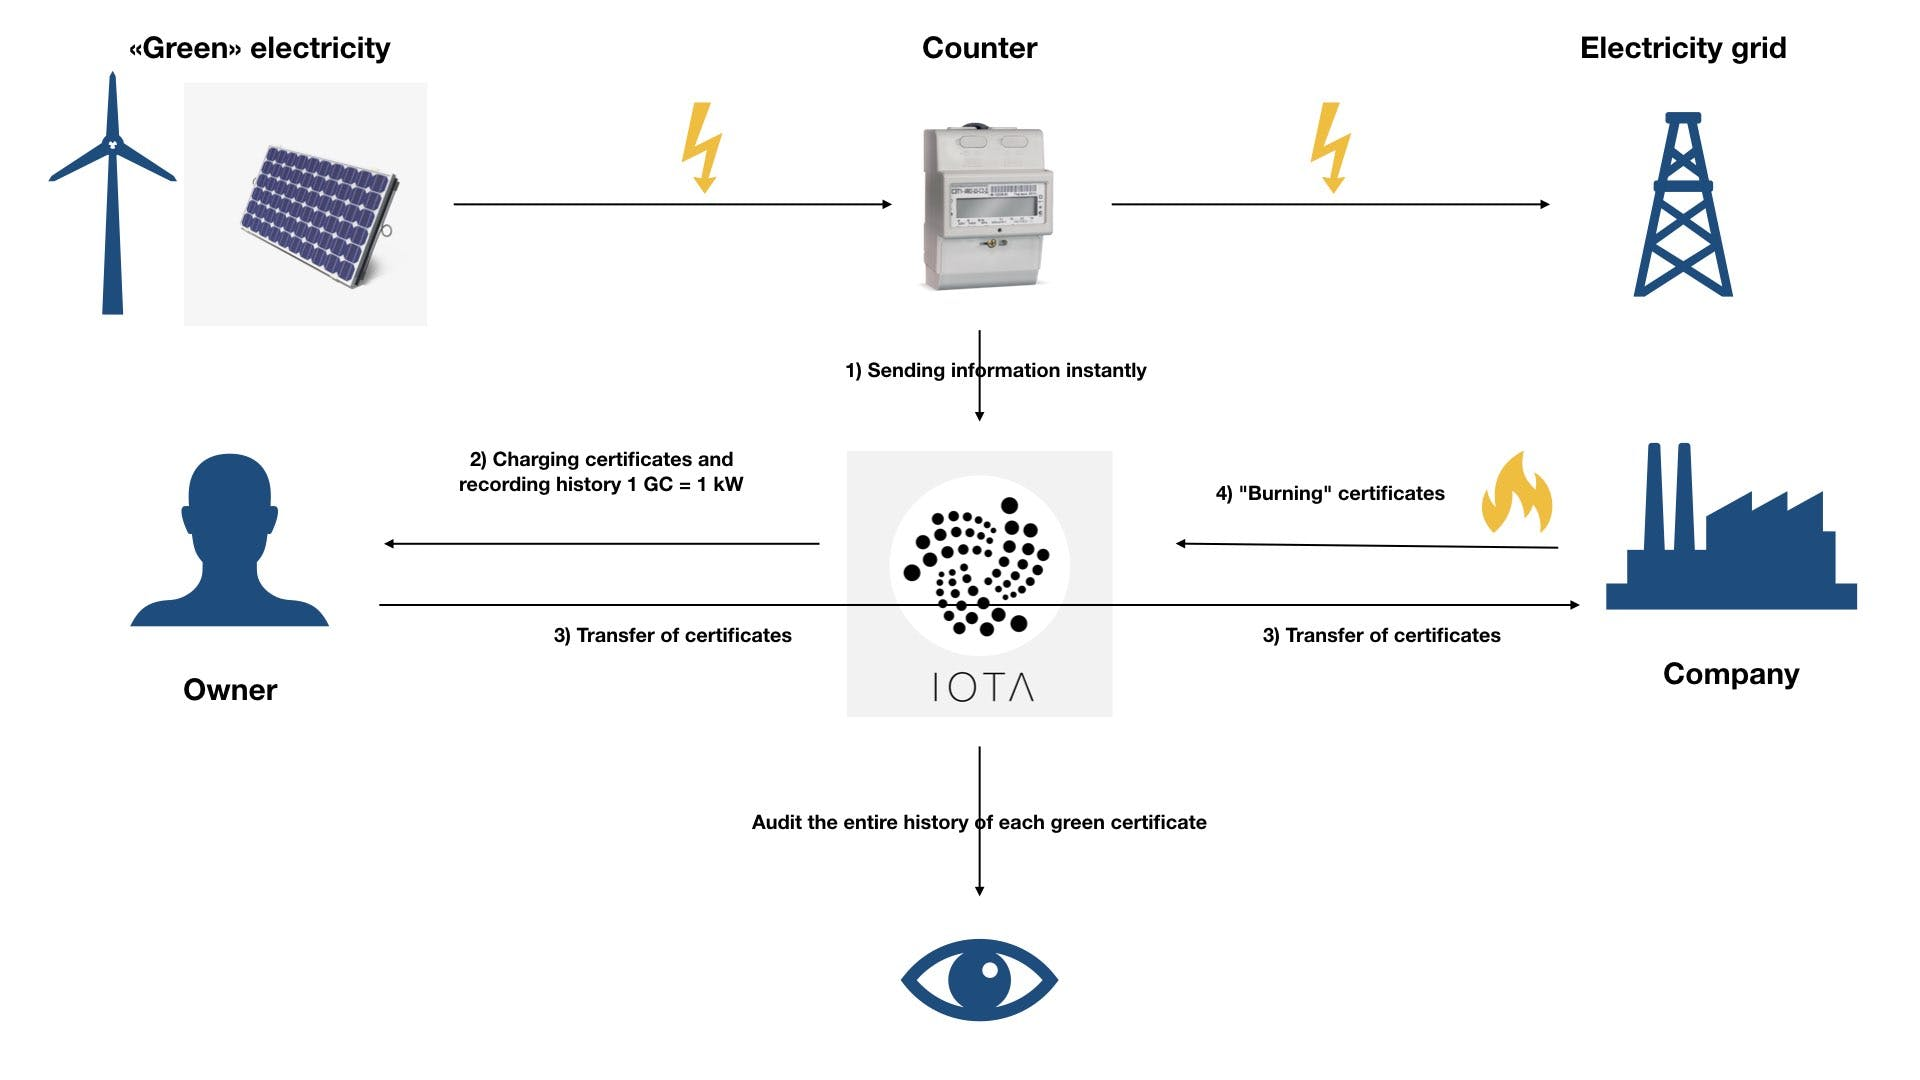 The scheme of the technical implementation of the prototype